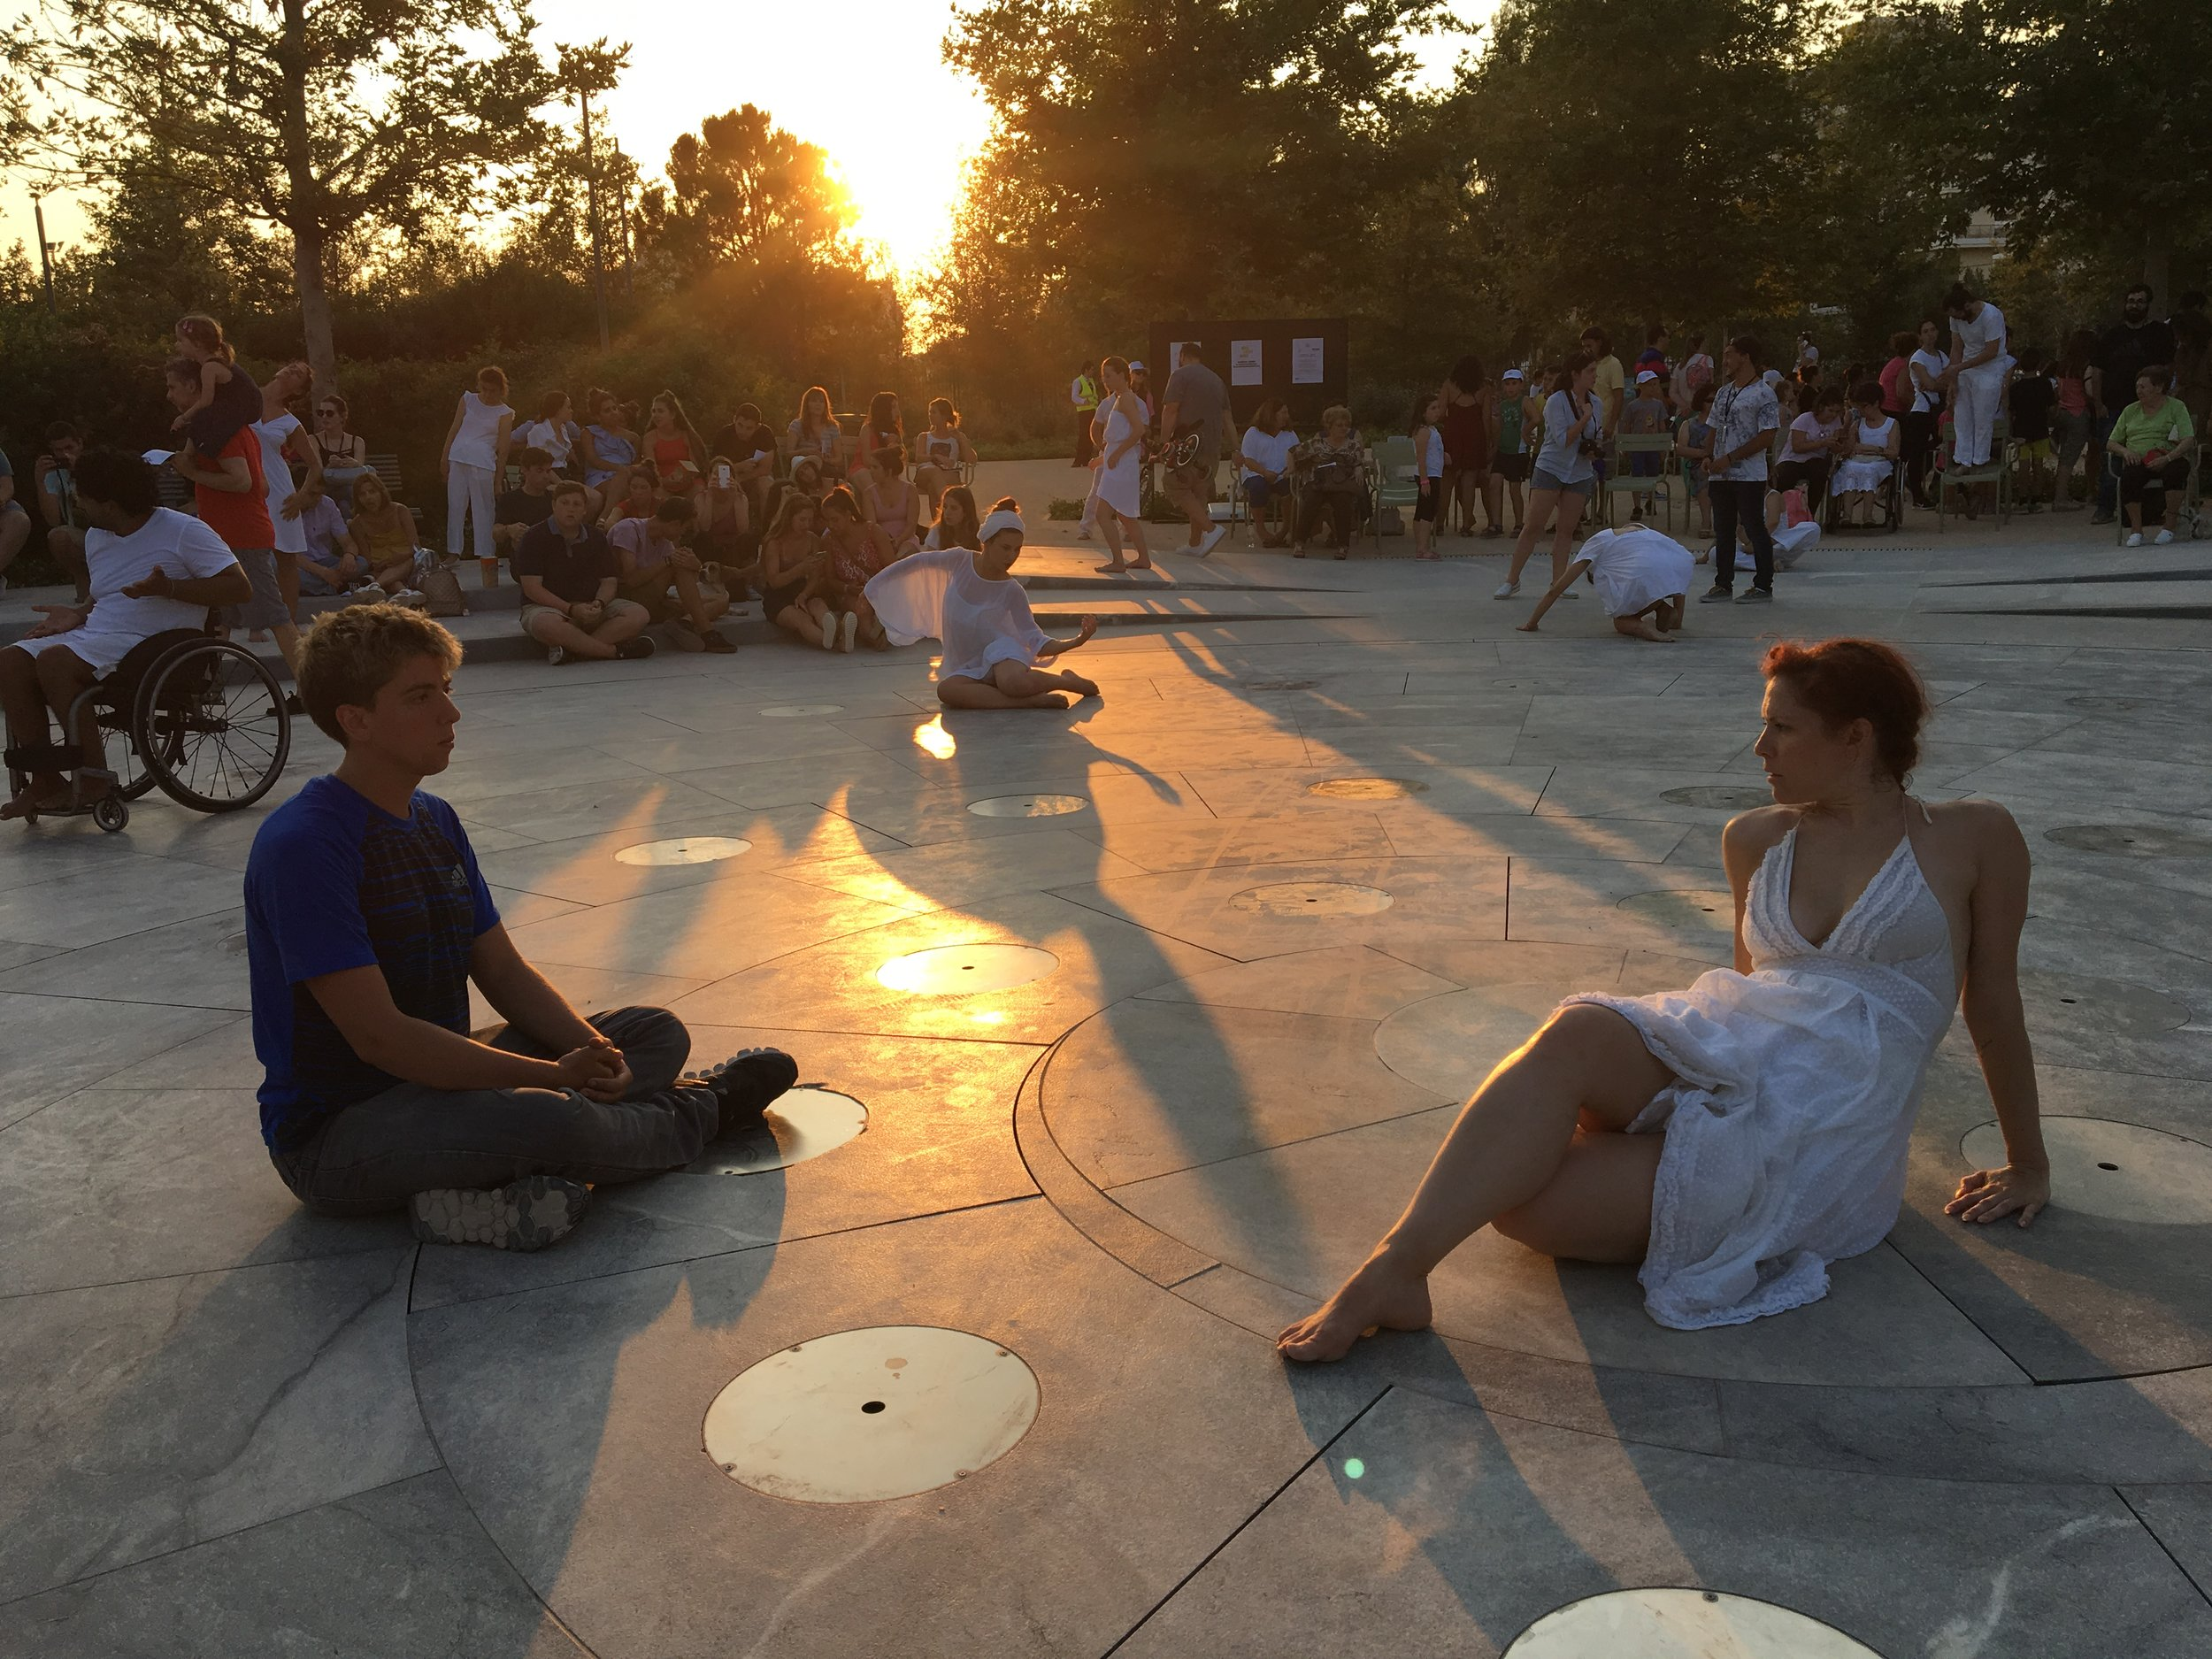 color photo of a man sitting on the ground in front of a woman also sitting, dressed in white, holding a pose. A ray from the sunset splits through the photo.